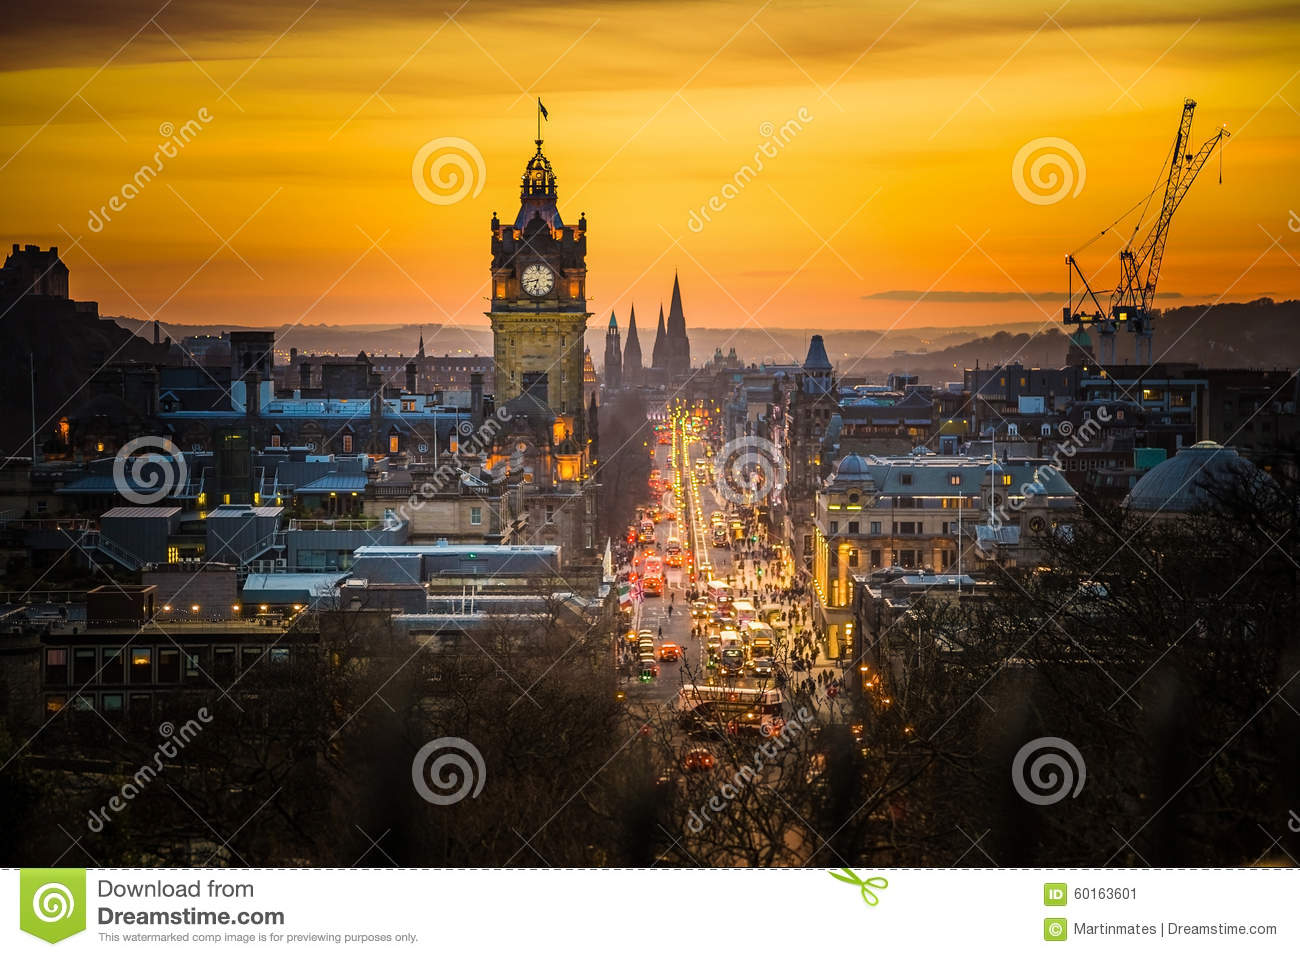 Princess street and Balmoral tower, sunset time